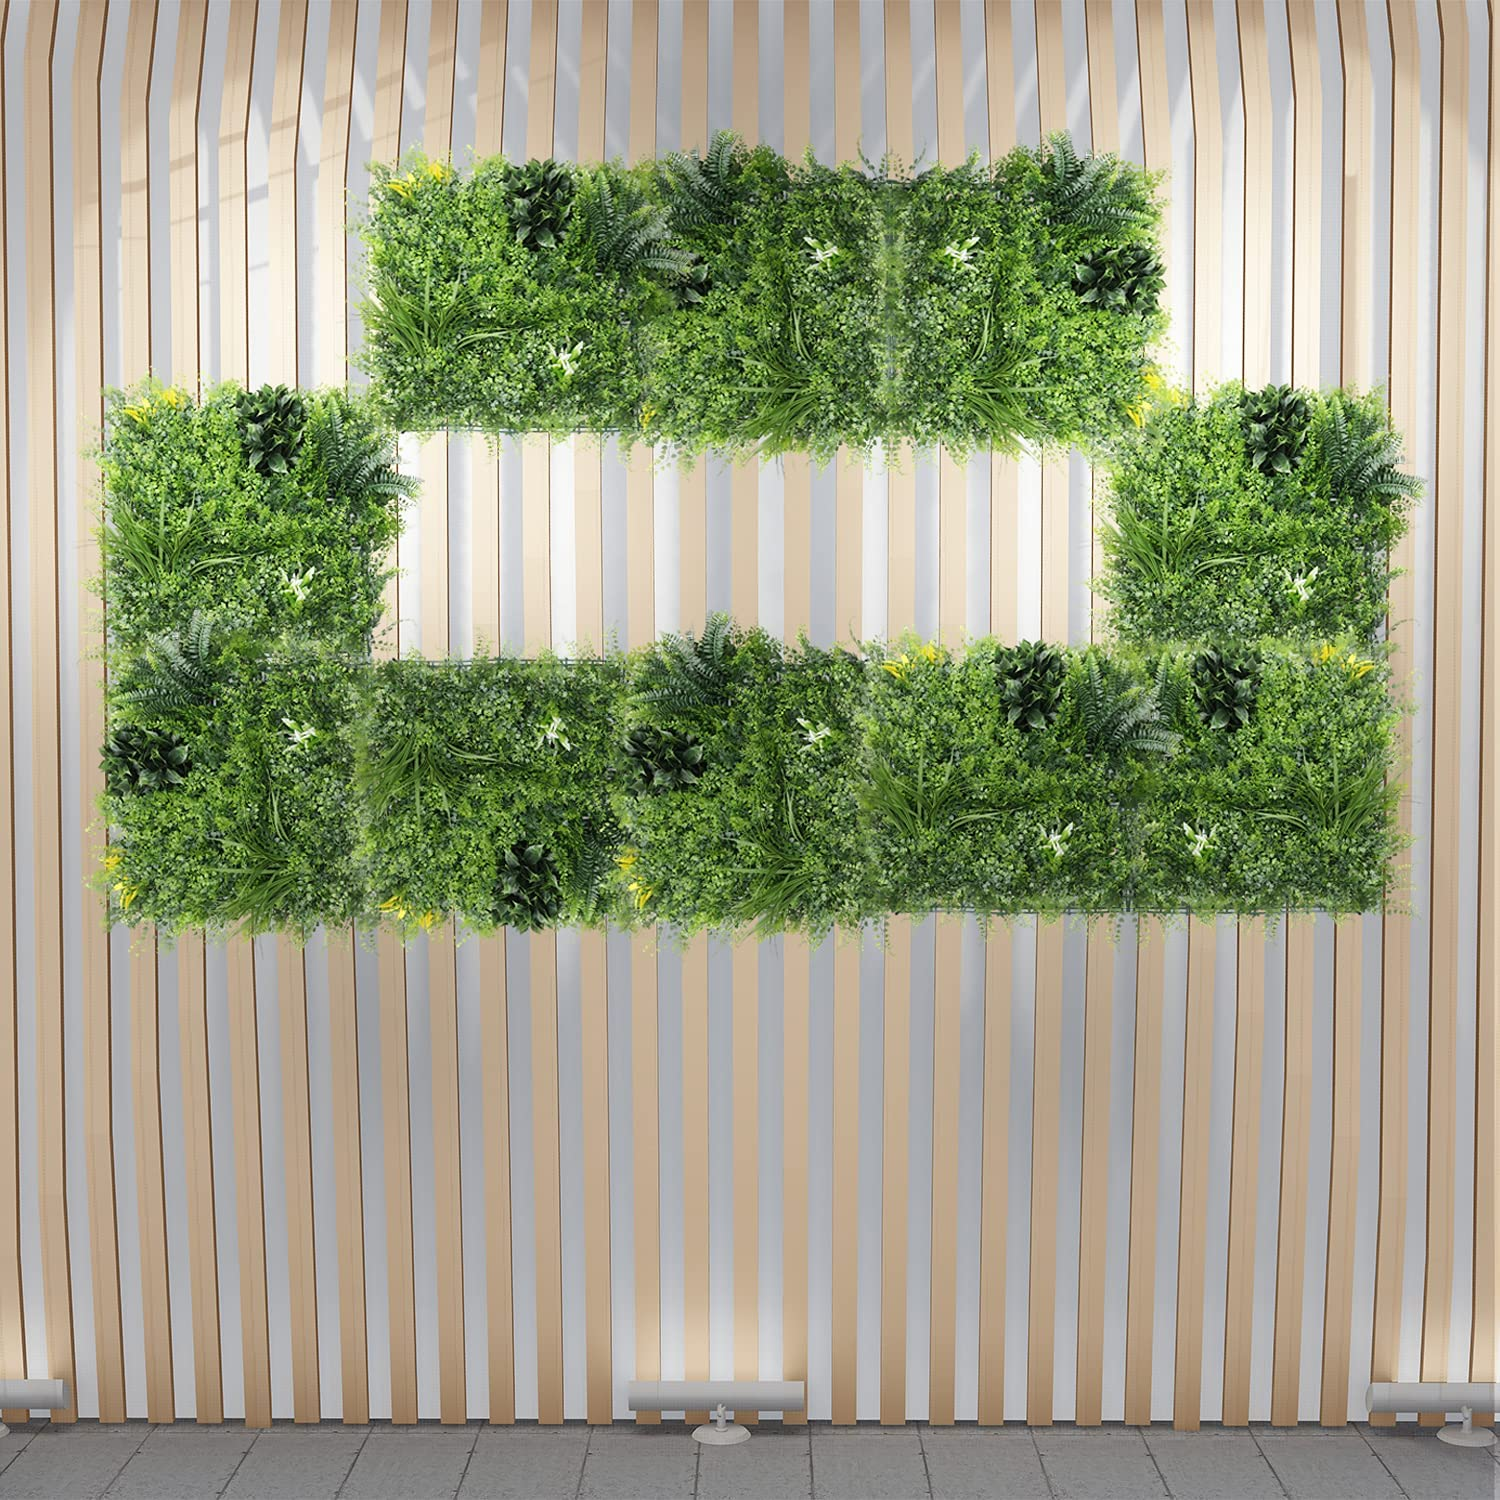 ECOOPTS Faux Ivy Privacy Max 77% OFF Fence Panels Max 65% OFF Screen Artificial Boxwood